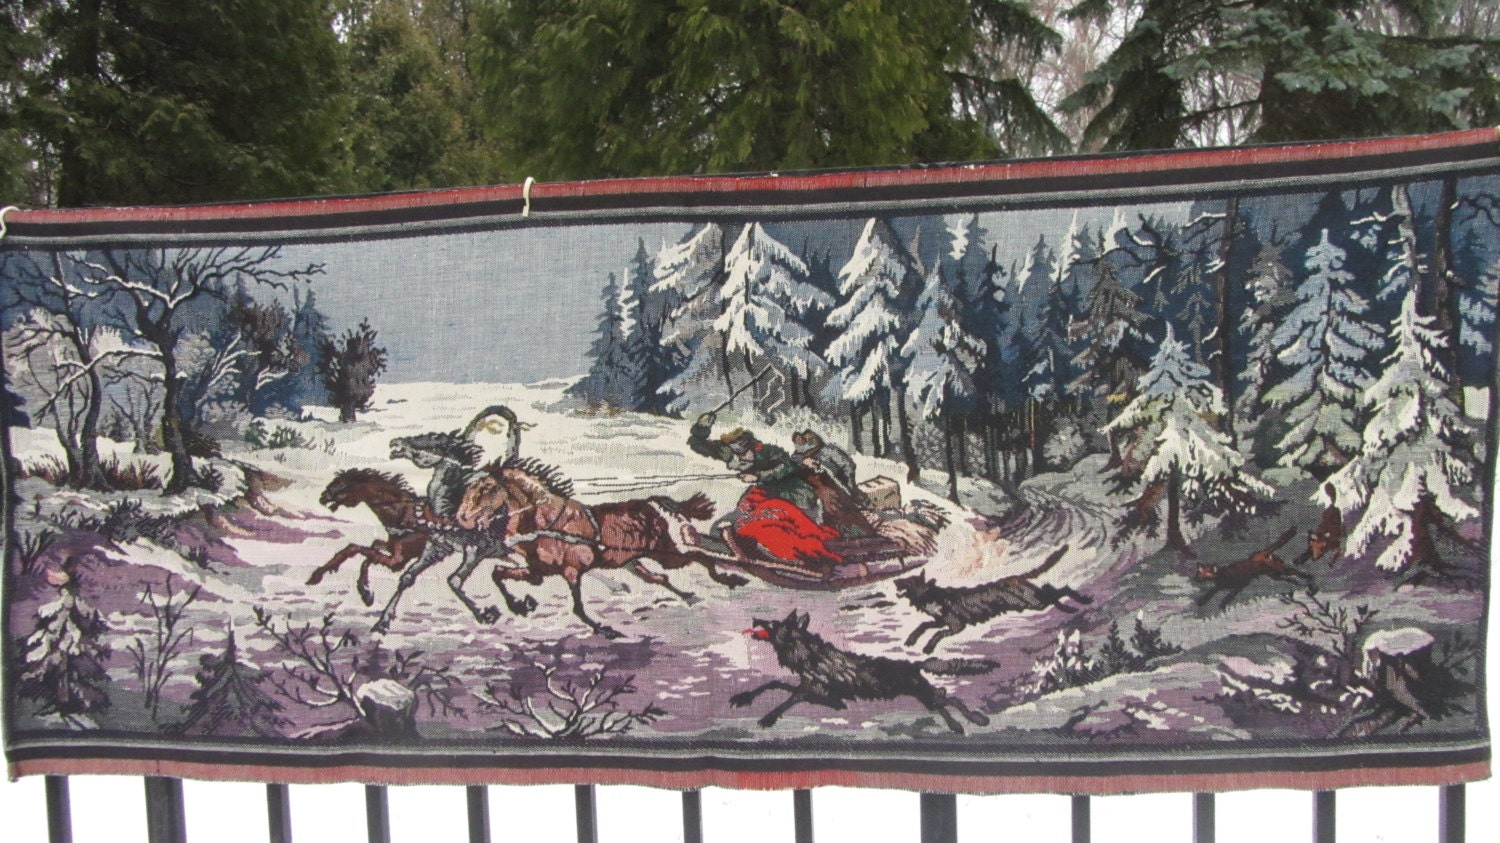 Cotton Vintage Fairy Tale Carpet from USSR, Cotton wall hanging, Home decor Carp